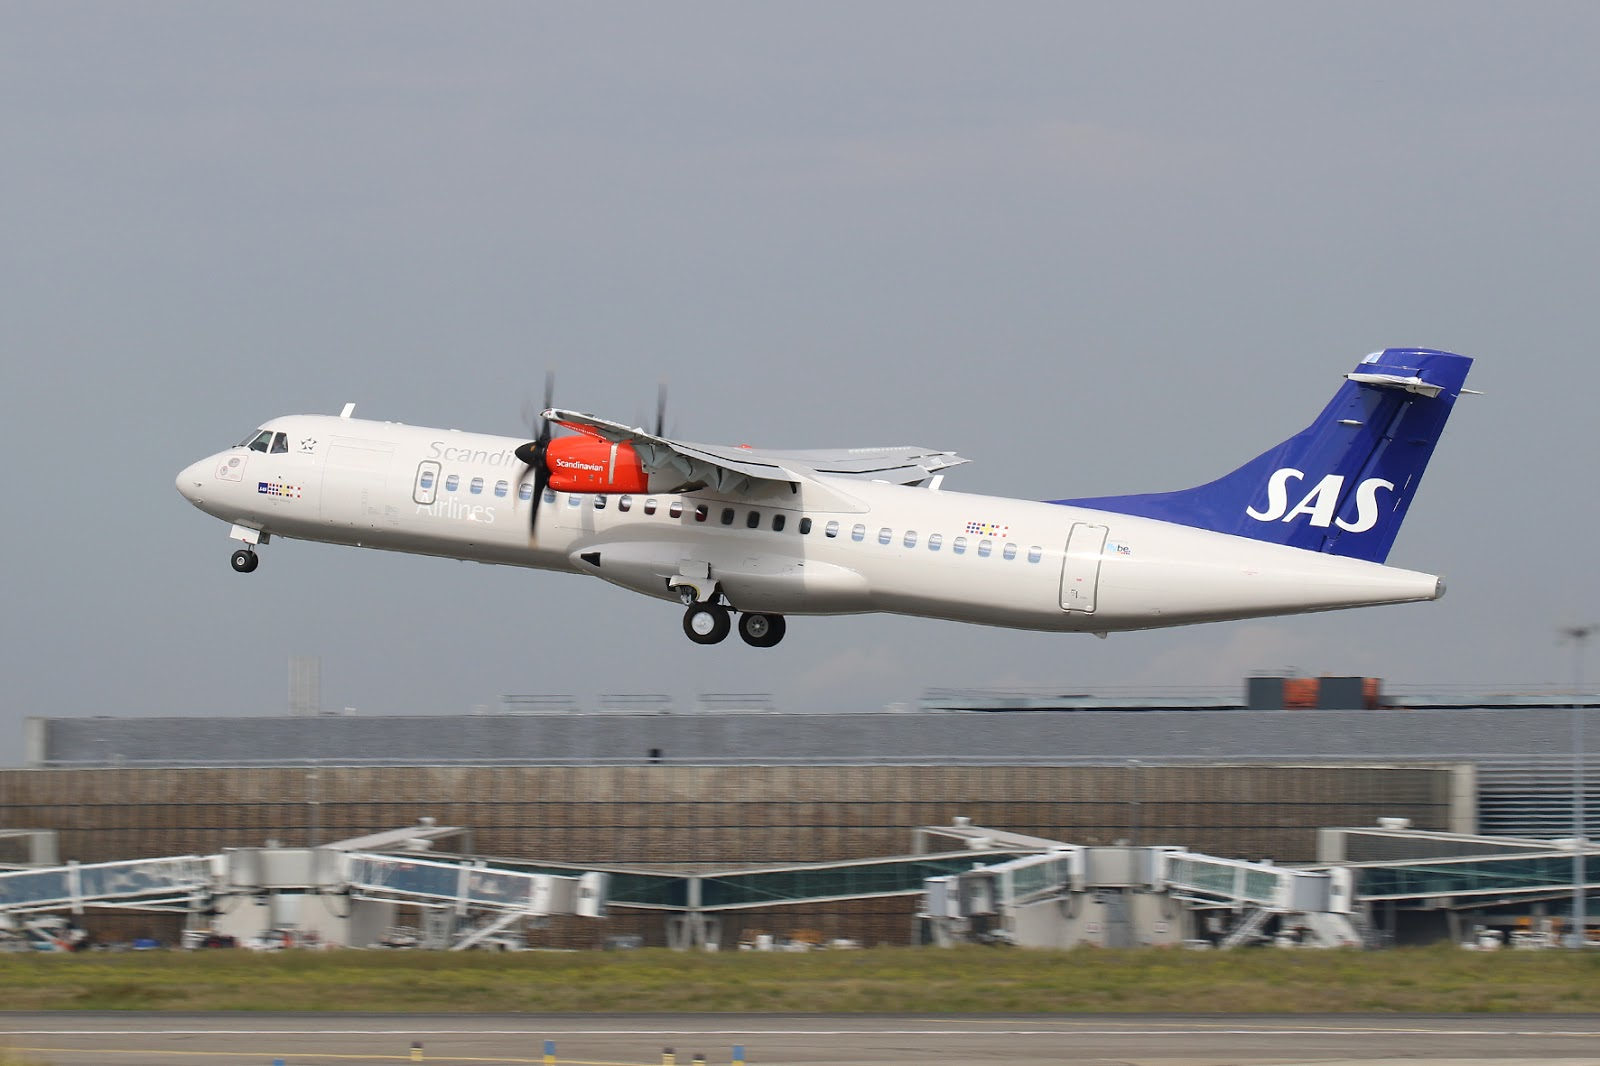 É MAIS QUE VOAR | Flybe welcomes the ATR 72-600 aircraft